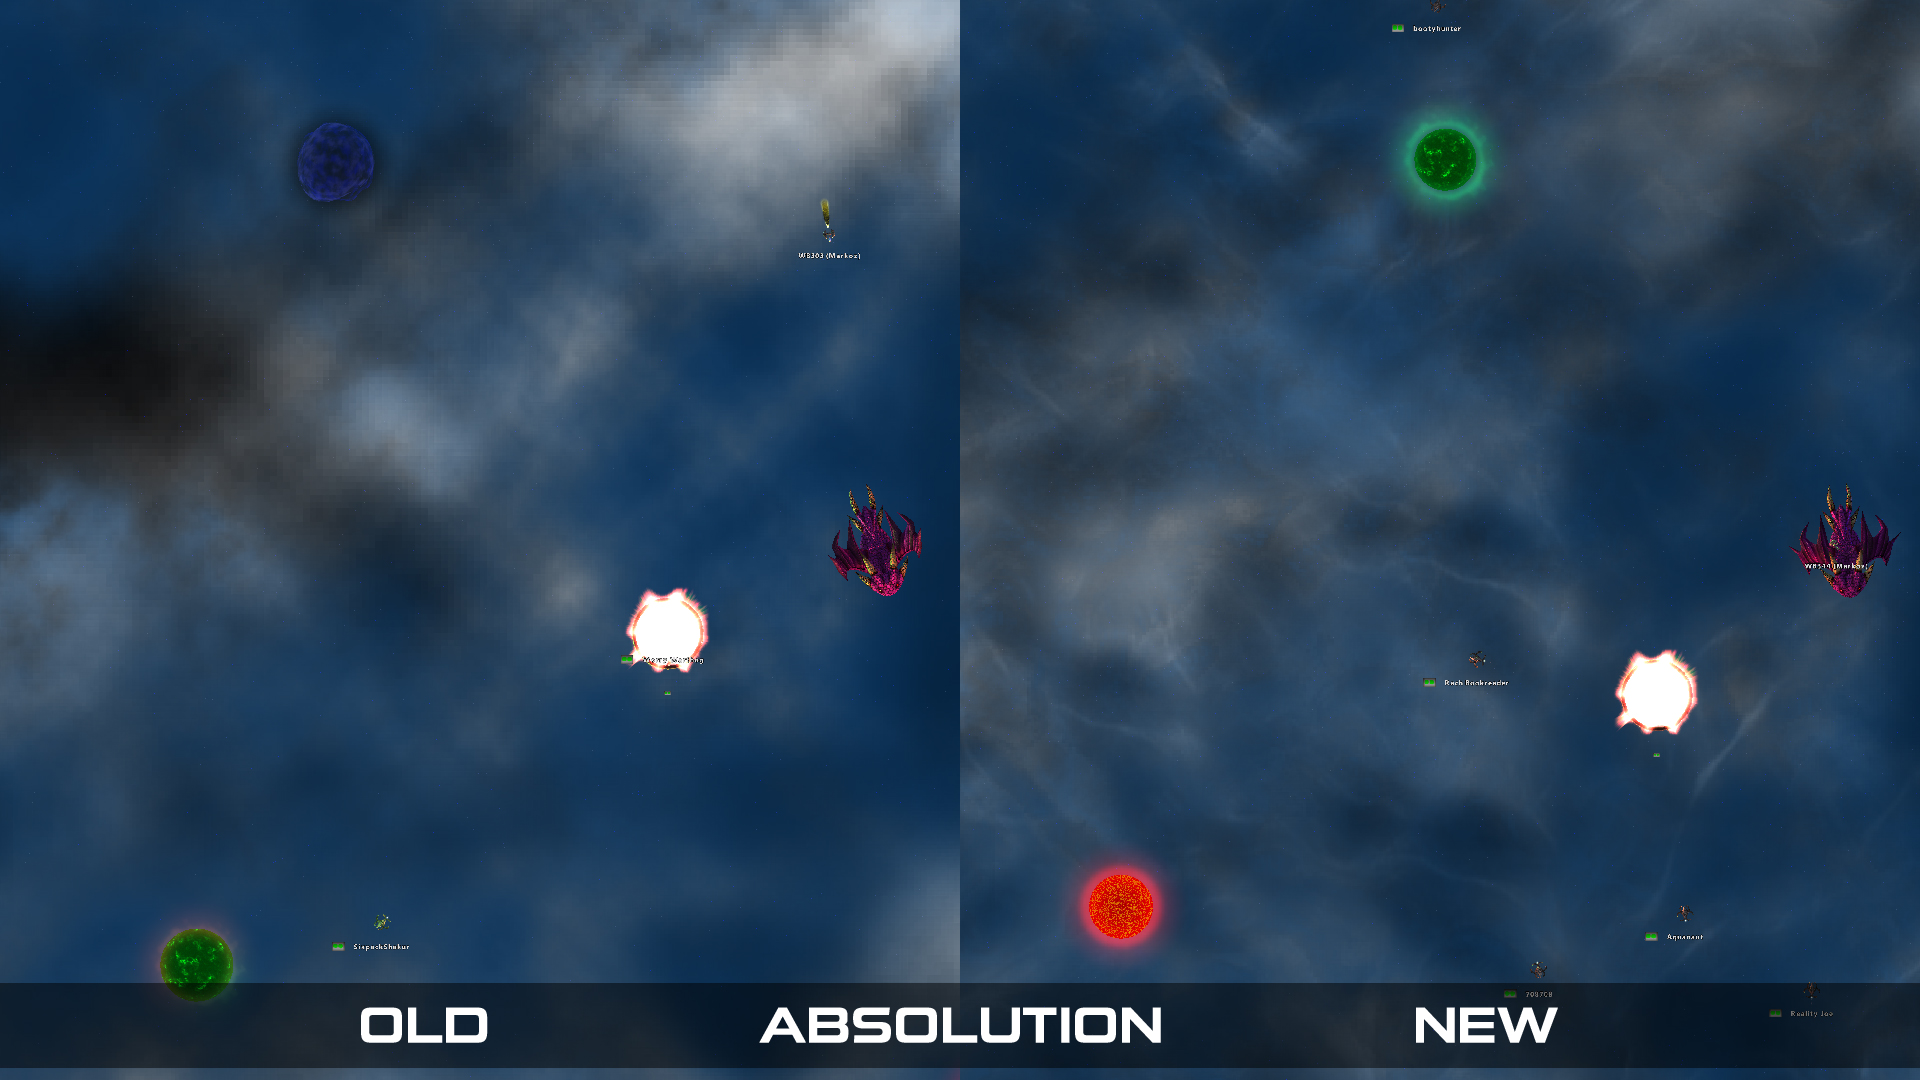 absolution_background